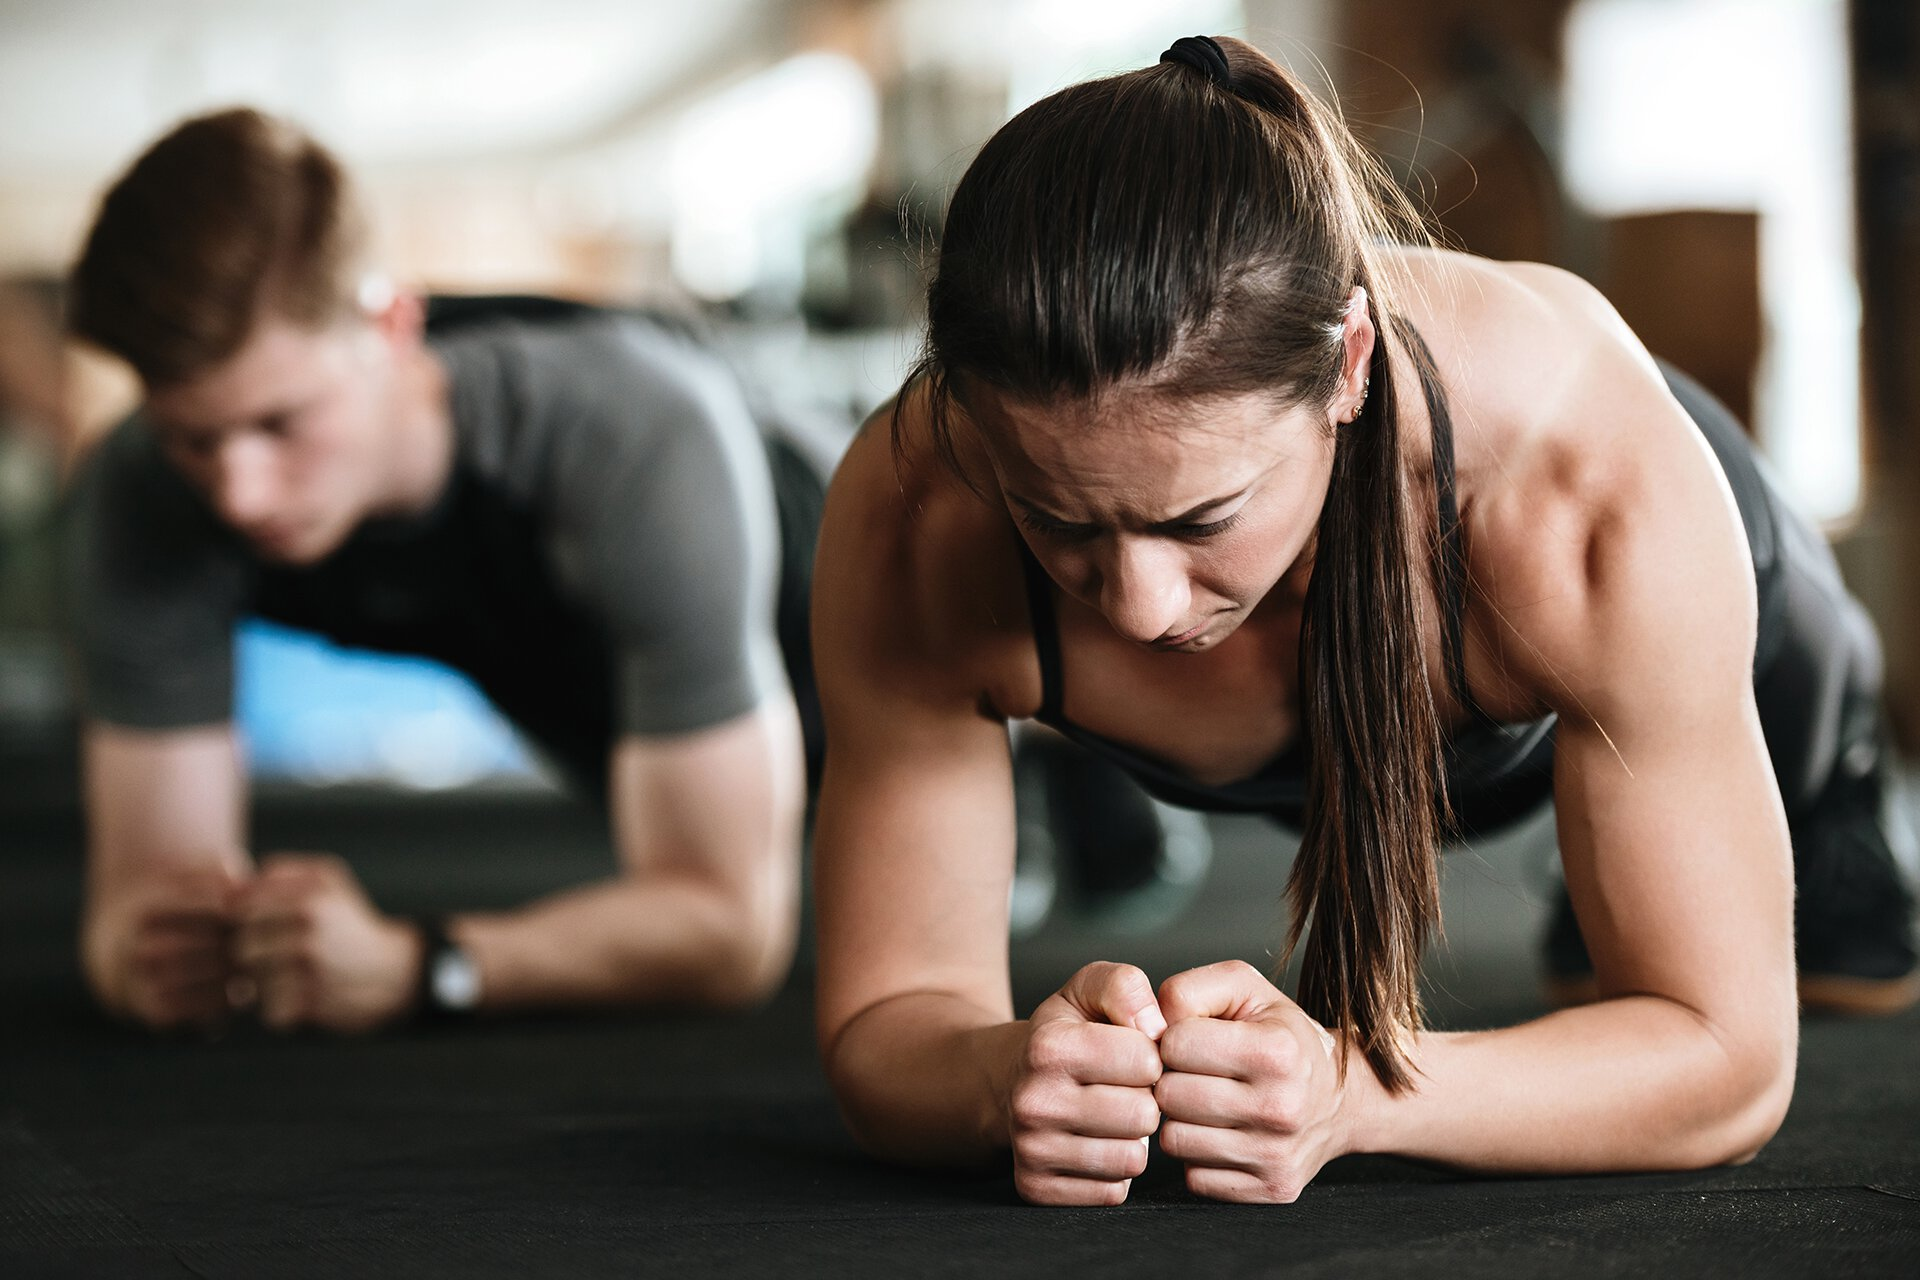 How To Overcome A Fitness Plateau? Switch Things Up